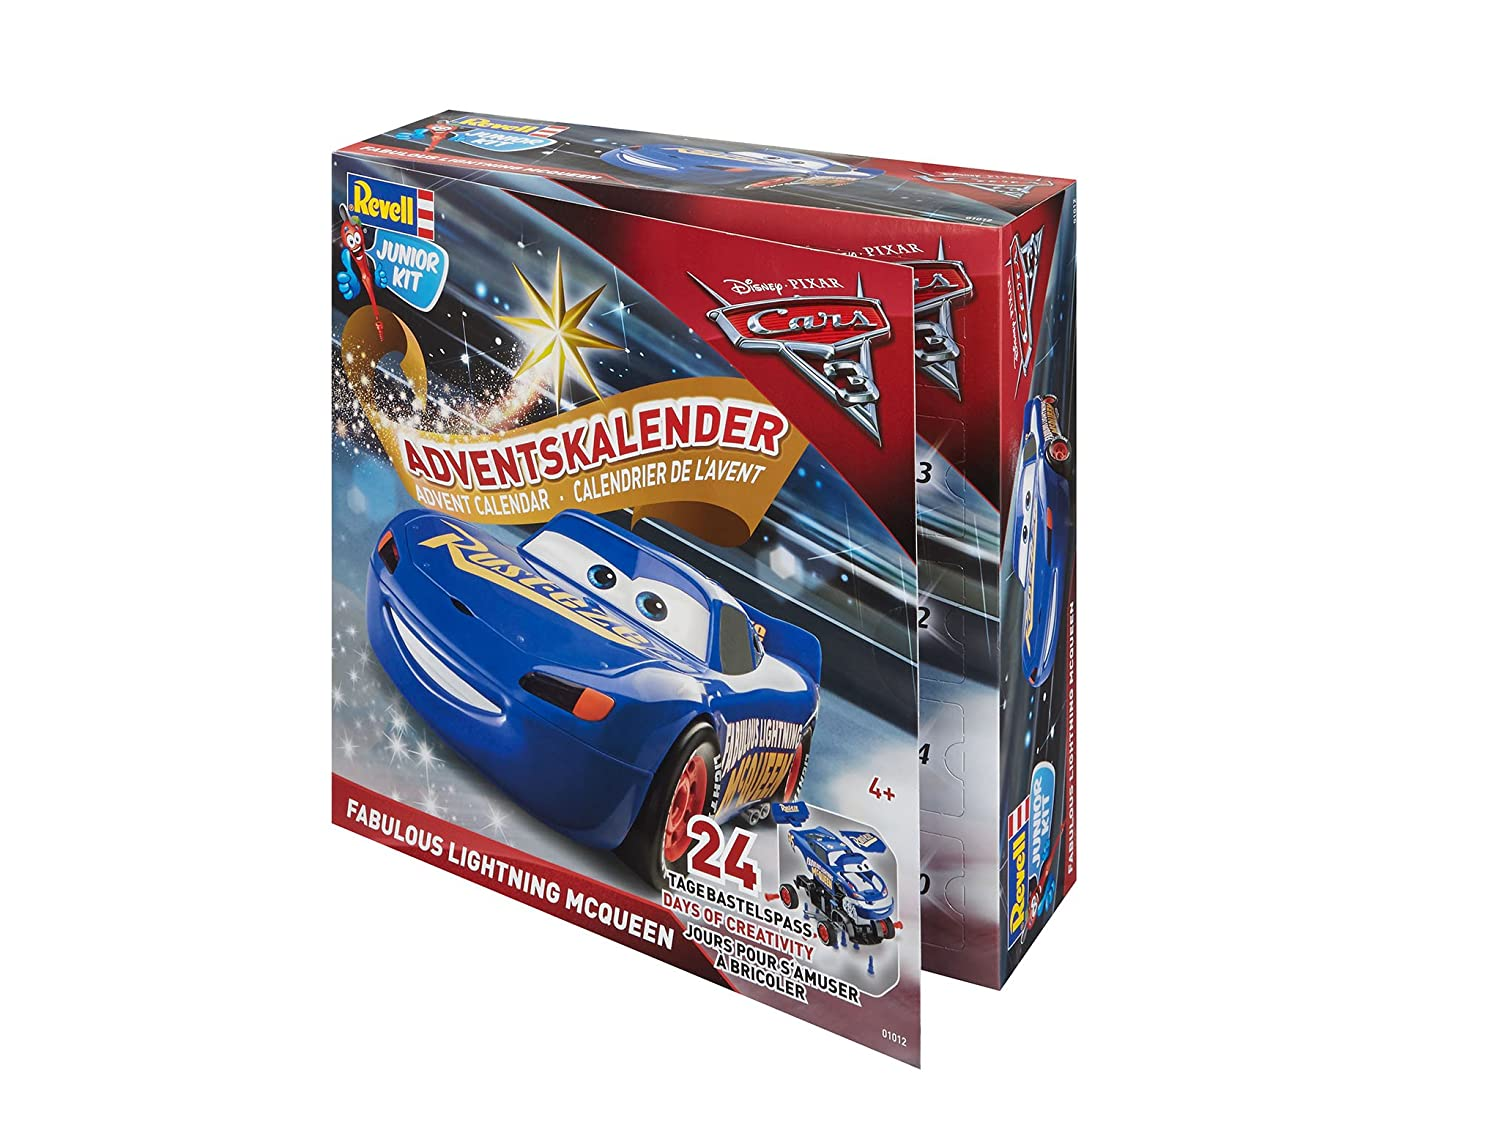 Revell Adventskalender Fabulous Lightning McQueen Junior Kit - Disney Cars 3 - 24 Tage Cooler Bastelspaß für Kinder ab 4 Jahren, Bausatz Zum Schrauben, Basteln und Spielen, robust - 01012 Revell_01012